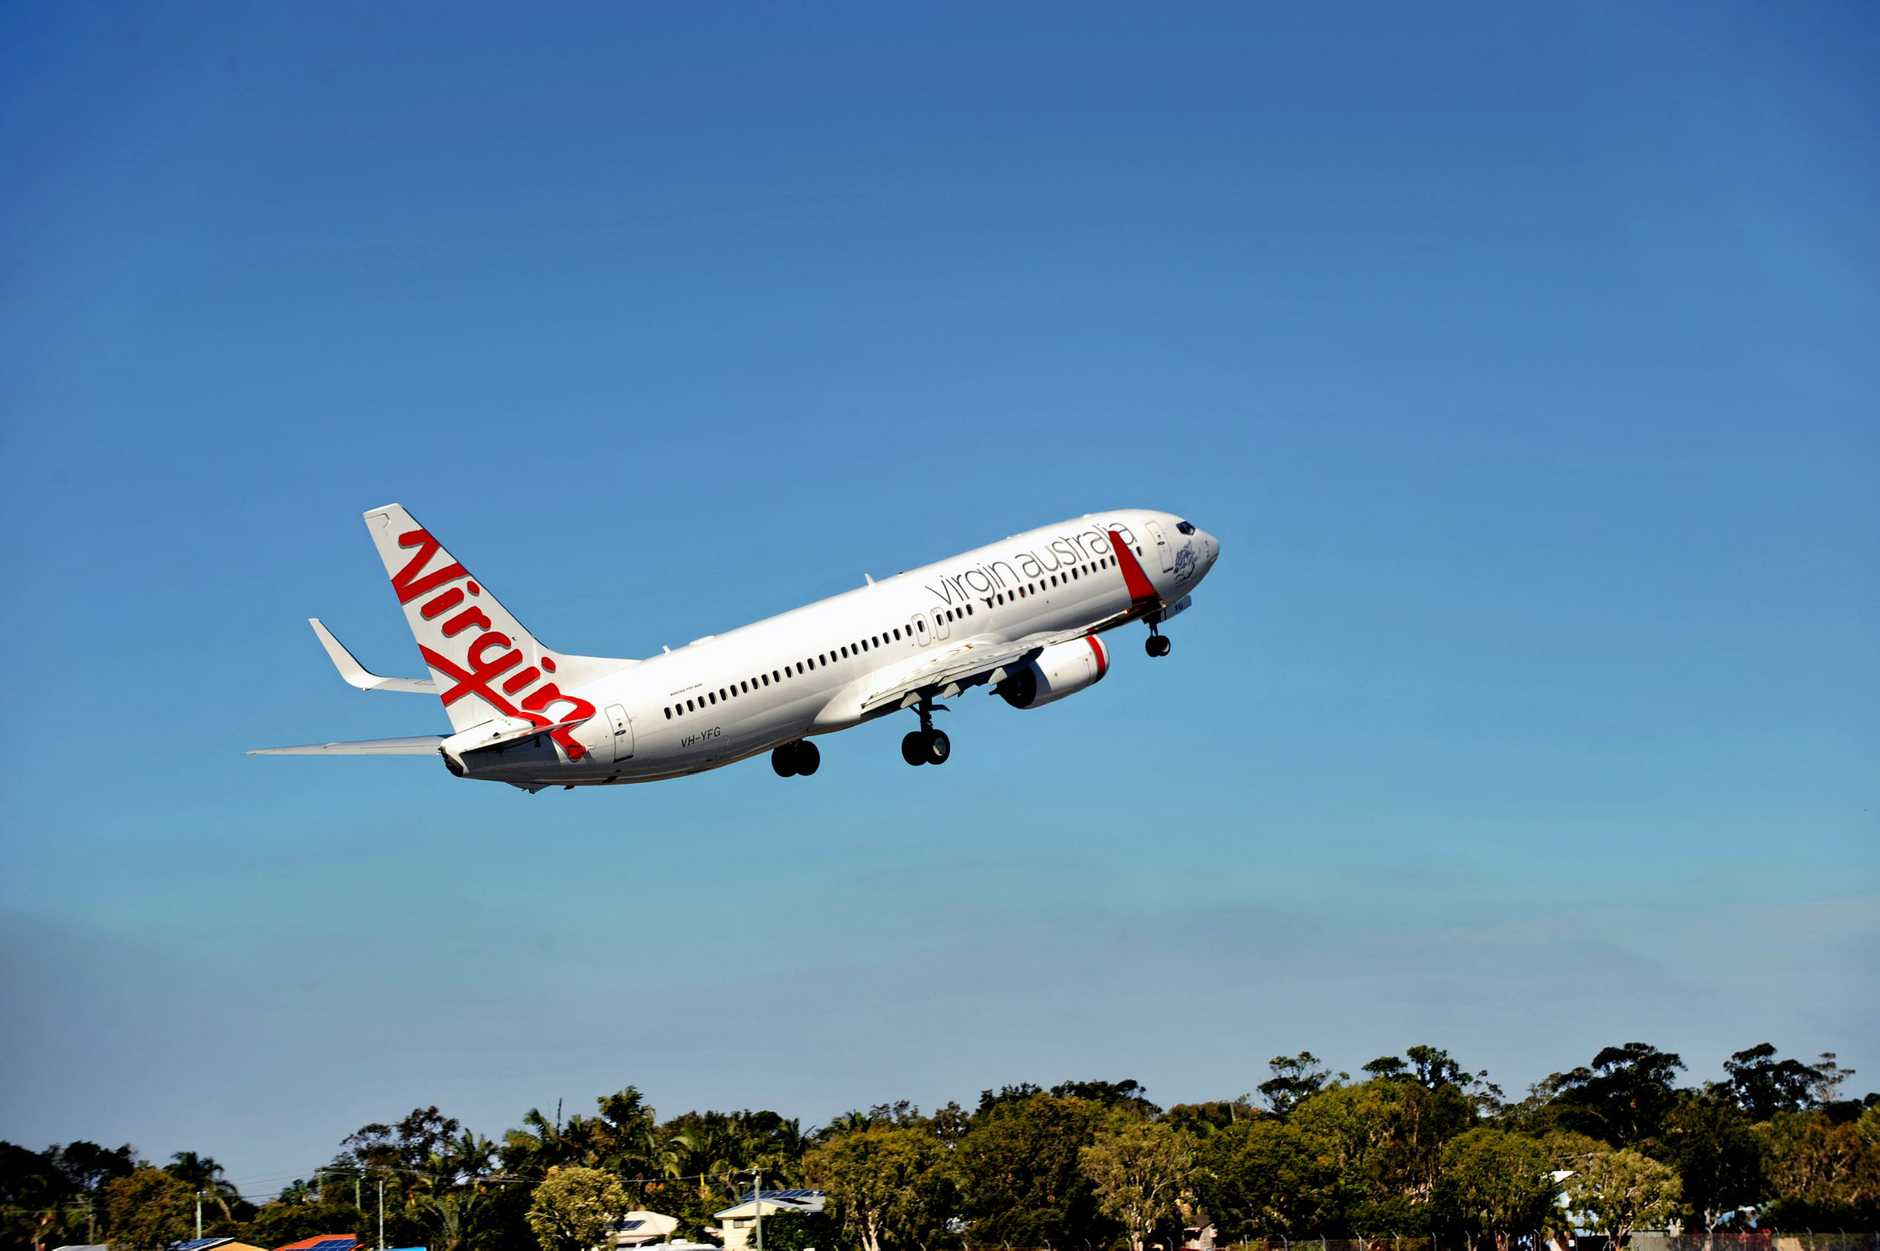 Virgin Australia direct services between Melbourne to Ballina